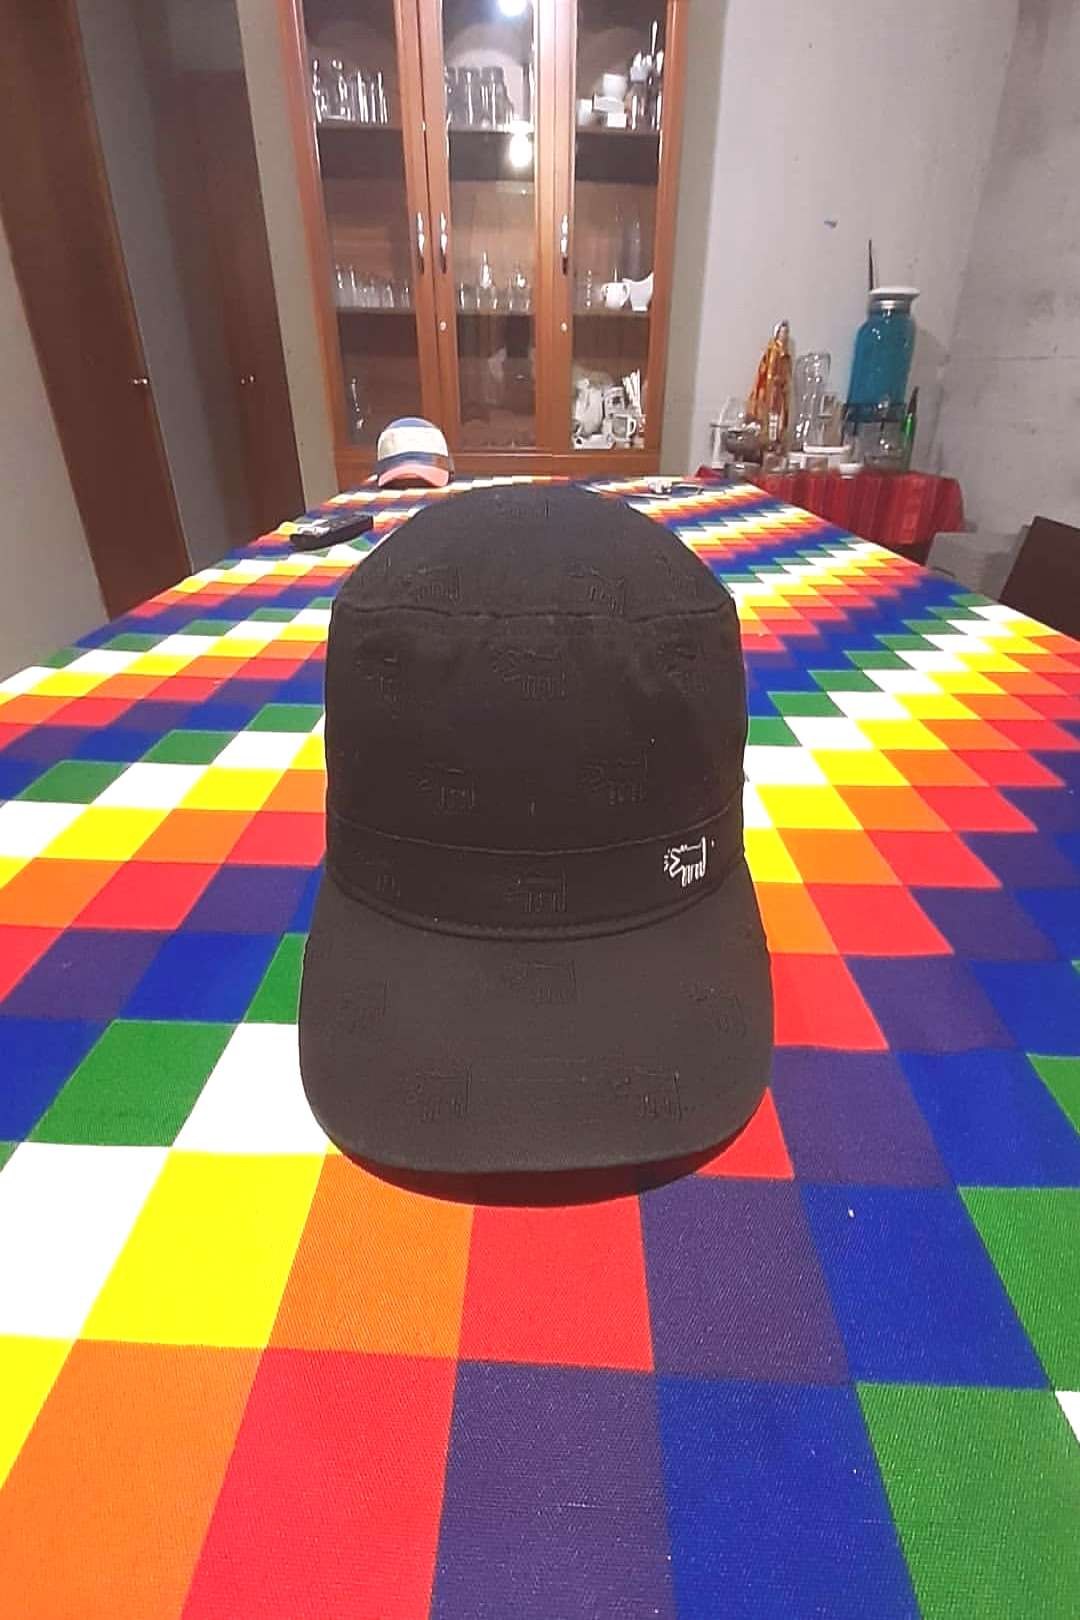 PV13 on June 02 2020 hat and stripes